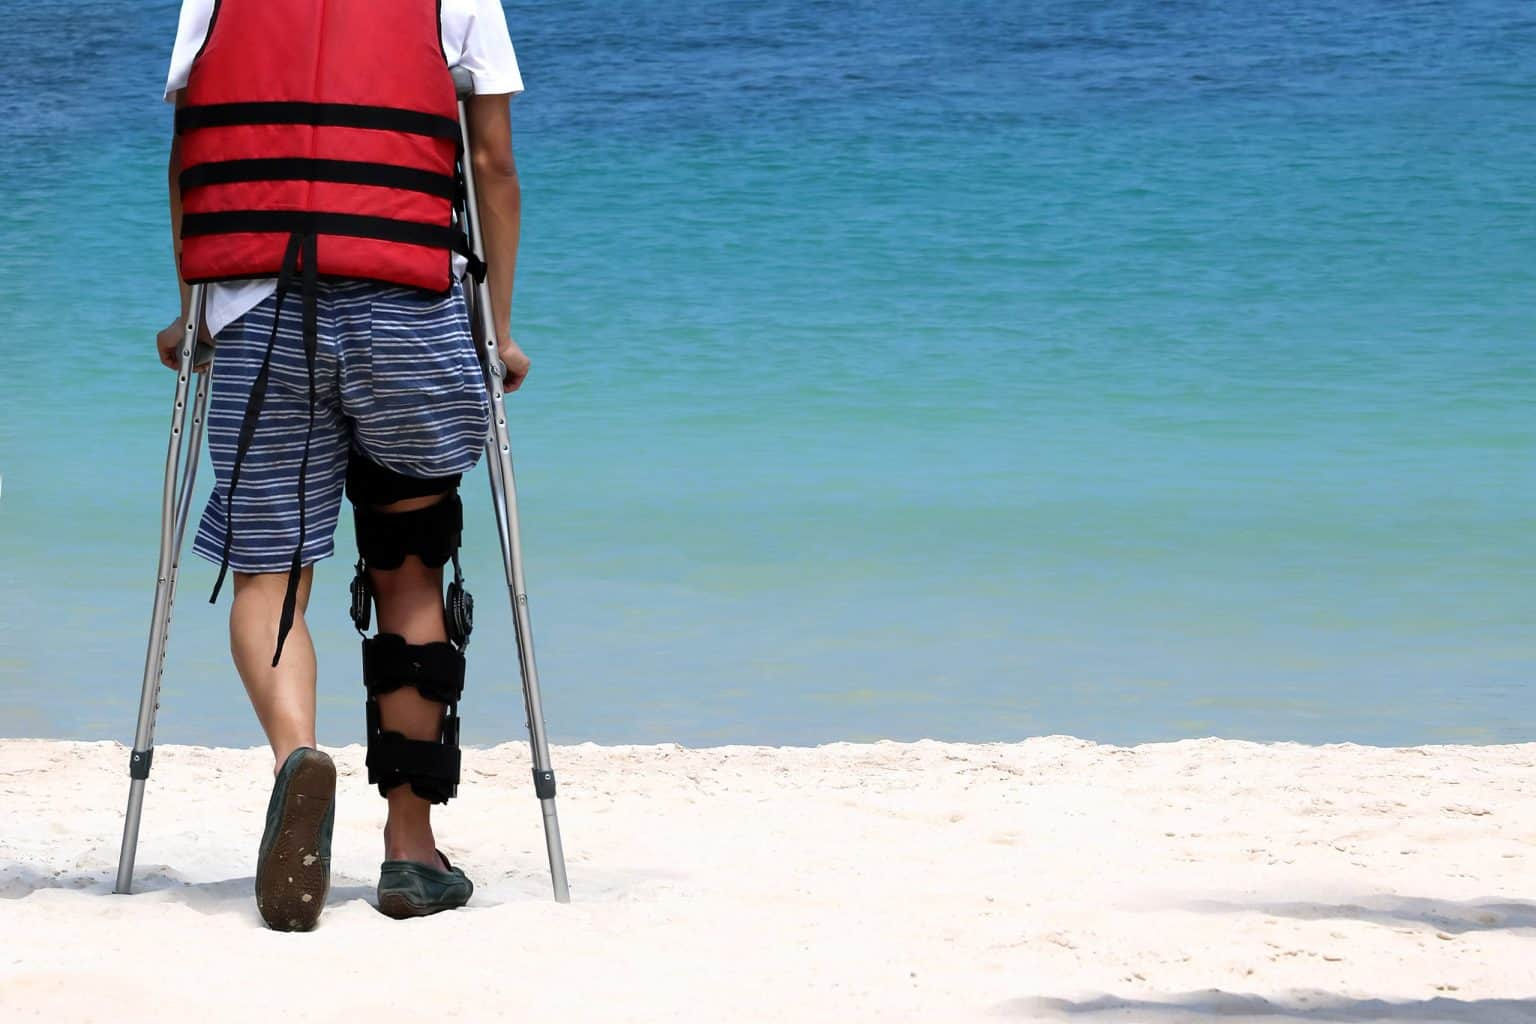 Make sure your insurance is up to scratch before heading off on holidays